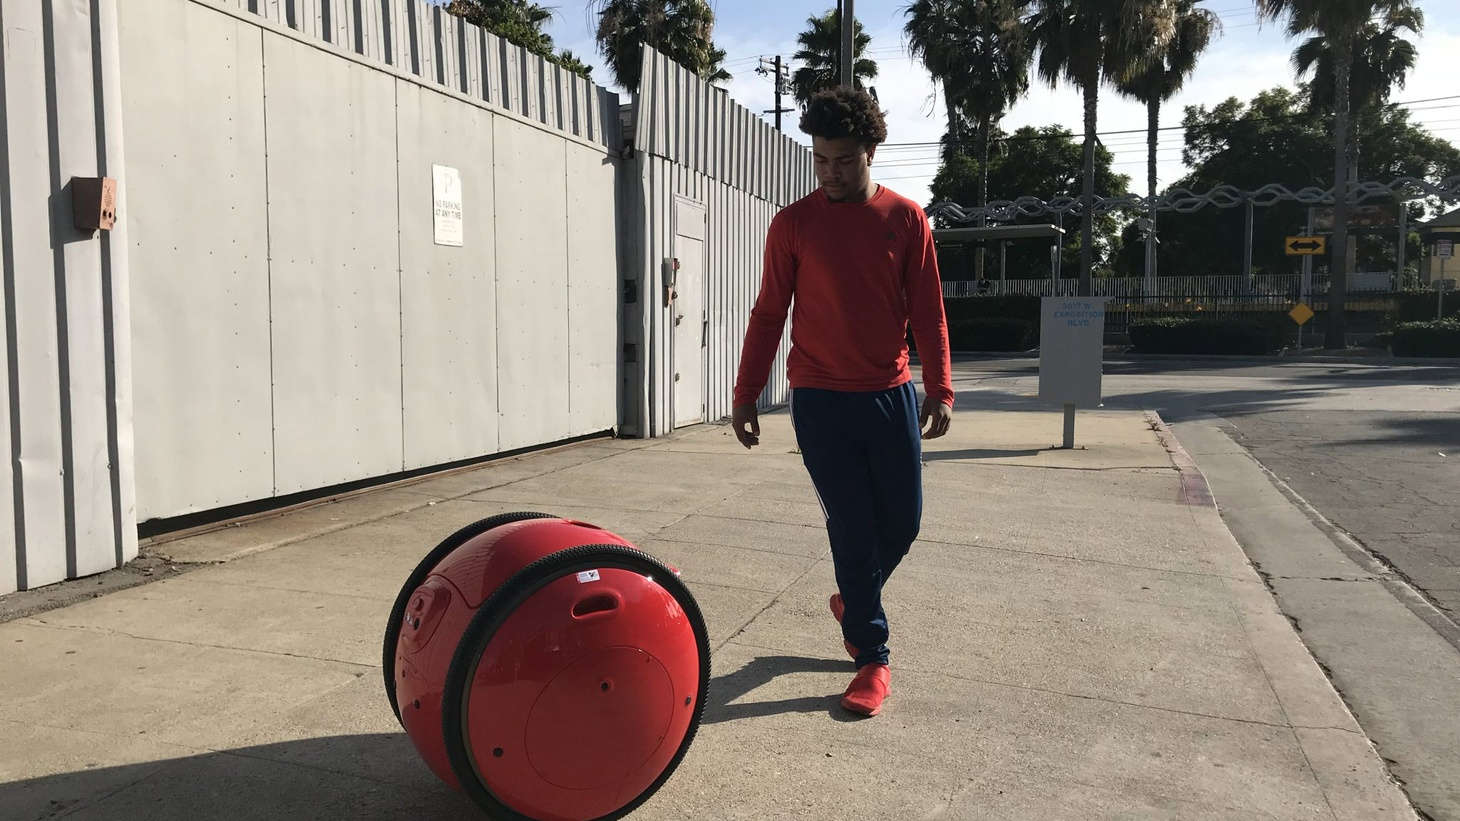 """Can a robot get people walking again? Meet Gita, a cargo carrier on wheels created by the same company that designed the Vespa scooter. And """"Dirty Girl Construction"""" founder Joan Barton shares her thoughts on building -- and triumphing -- in a man's world."""